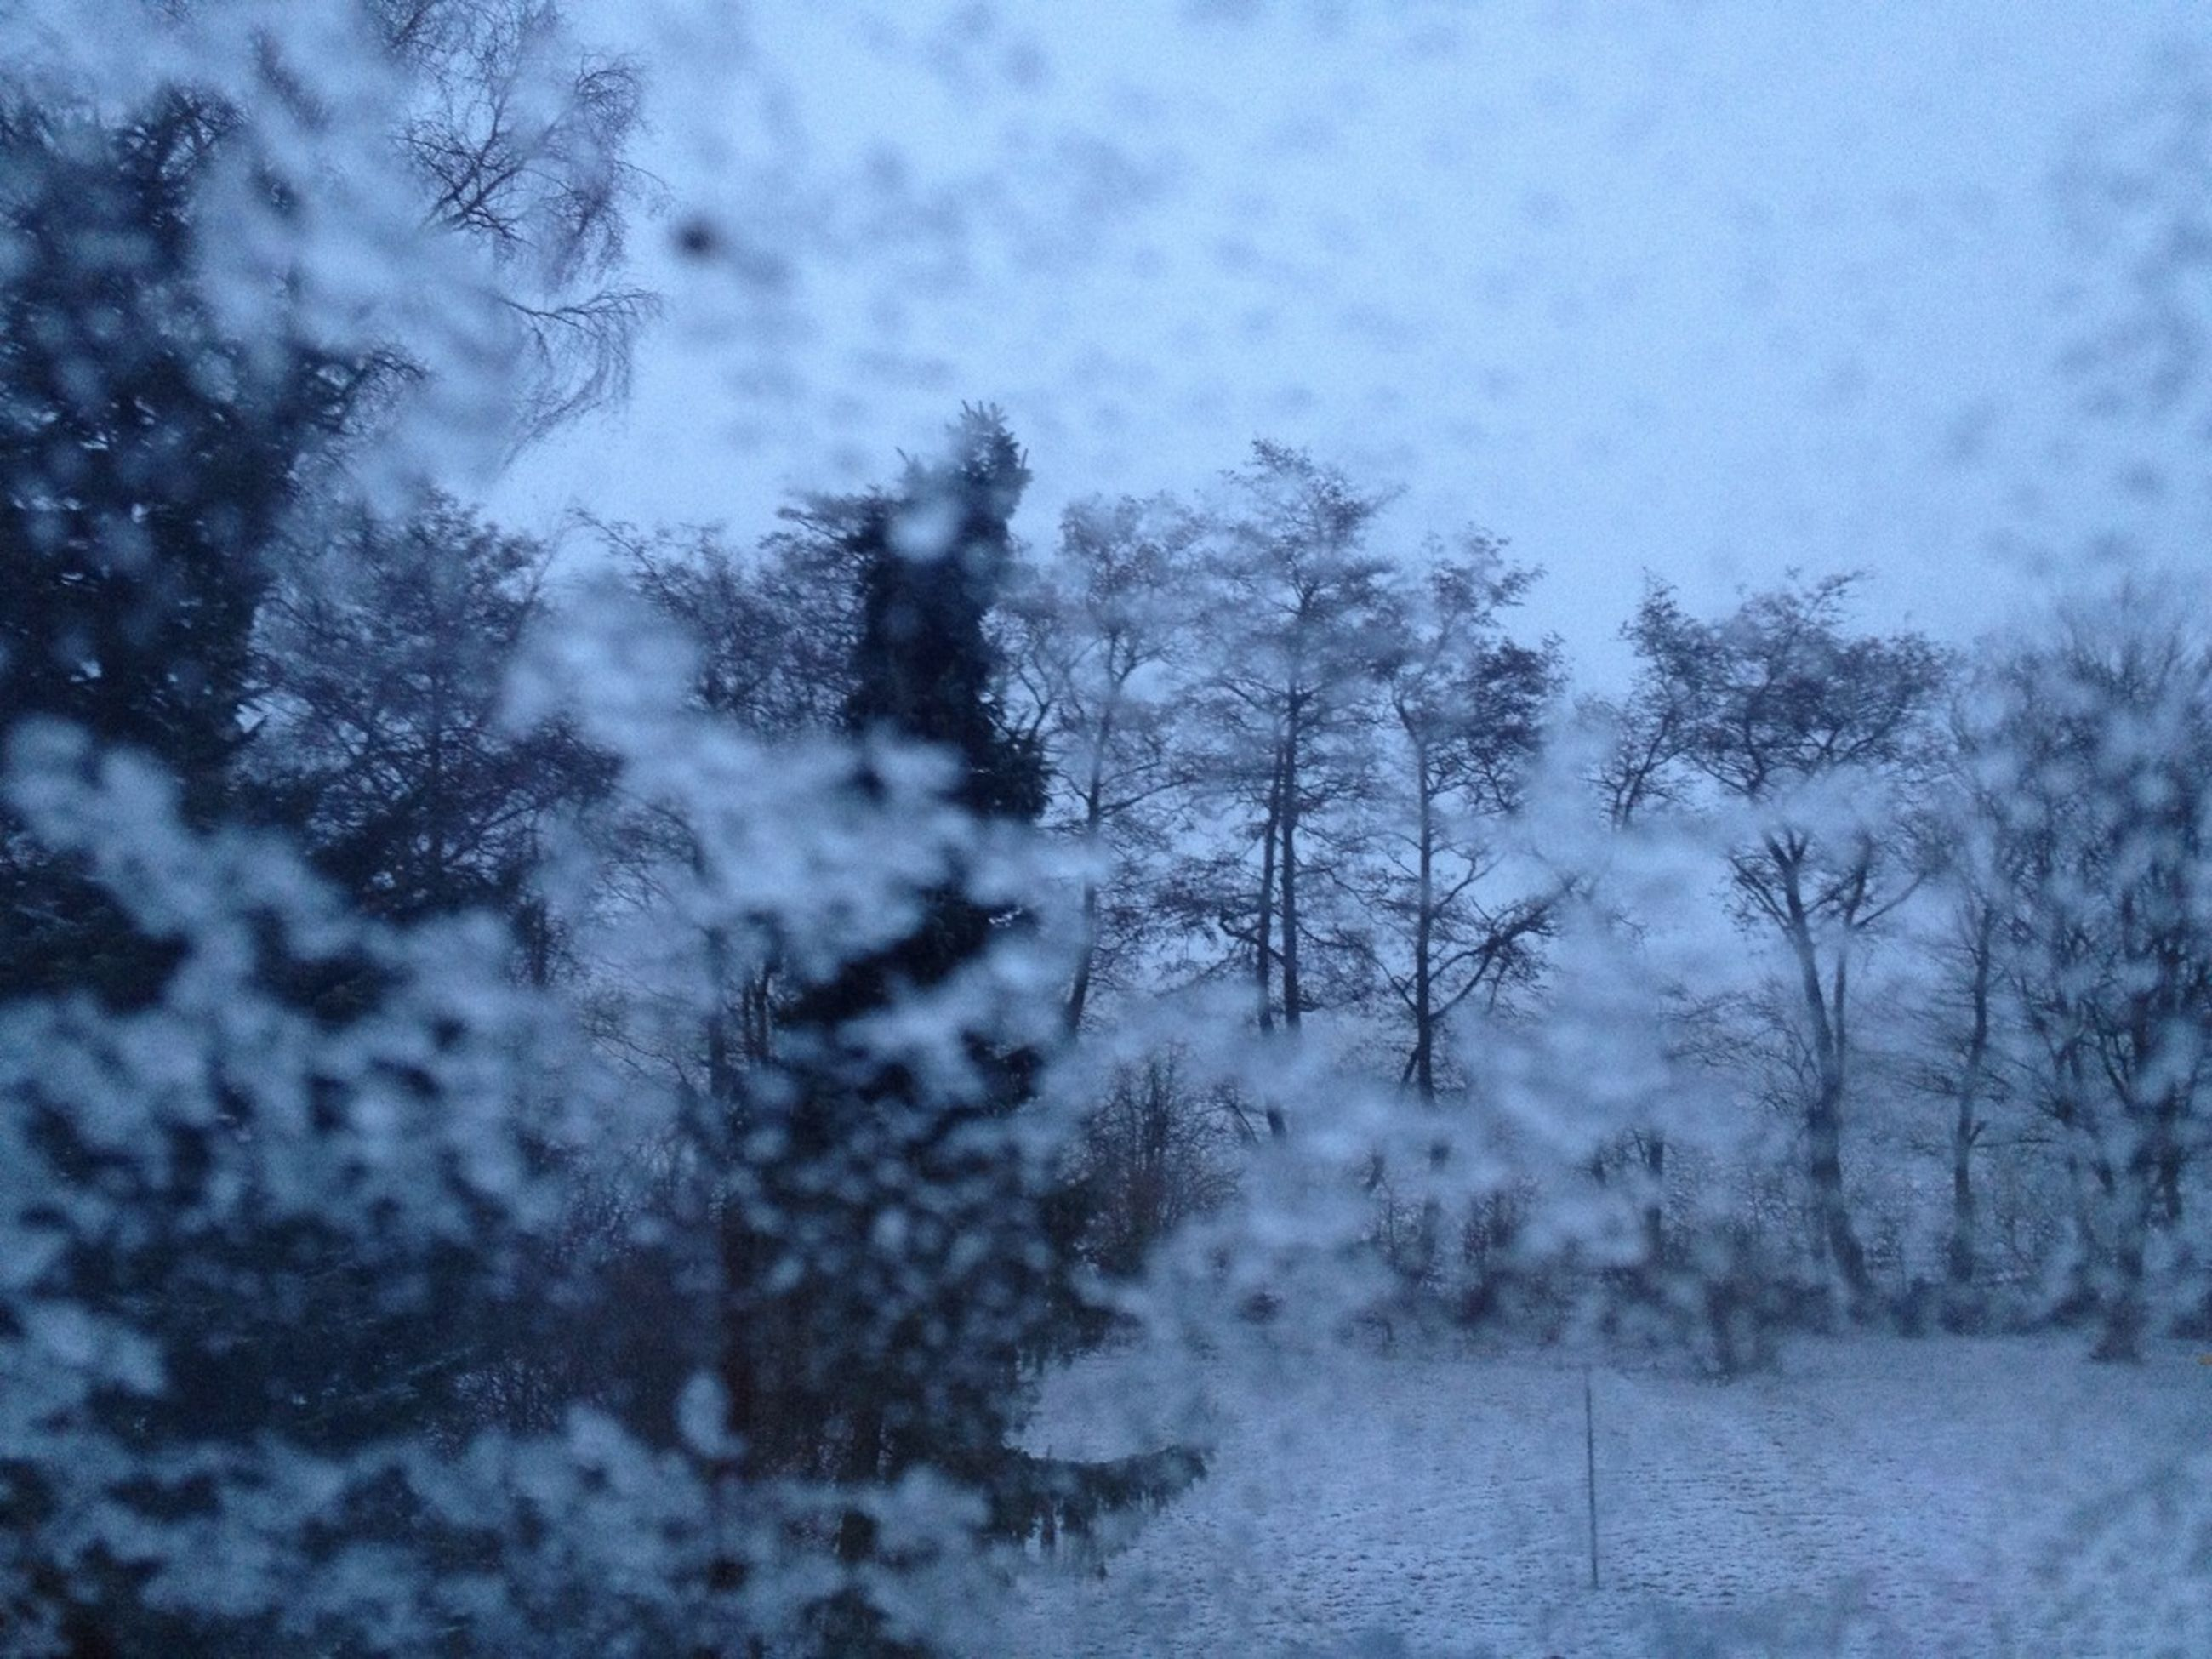 season, weather, tree, winter, cold temperature, snow, sky, nature, rain, wet, glass - material, window, transparent, tranquility, day, beauty in nature, water, focus on foreground, drop, no people